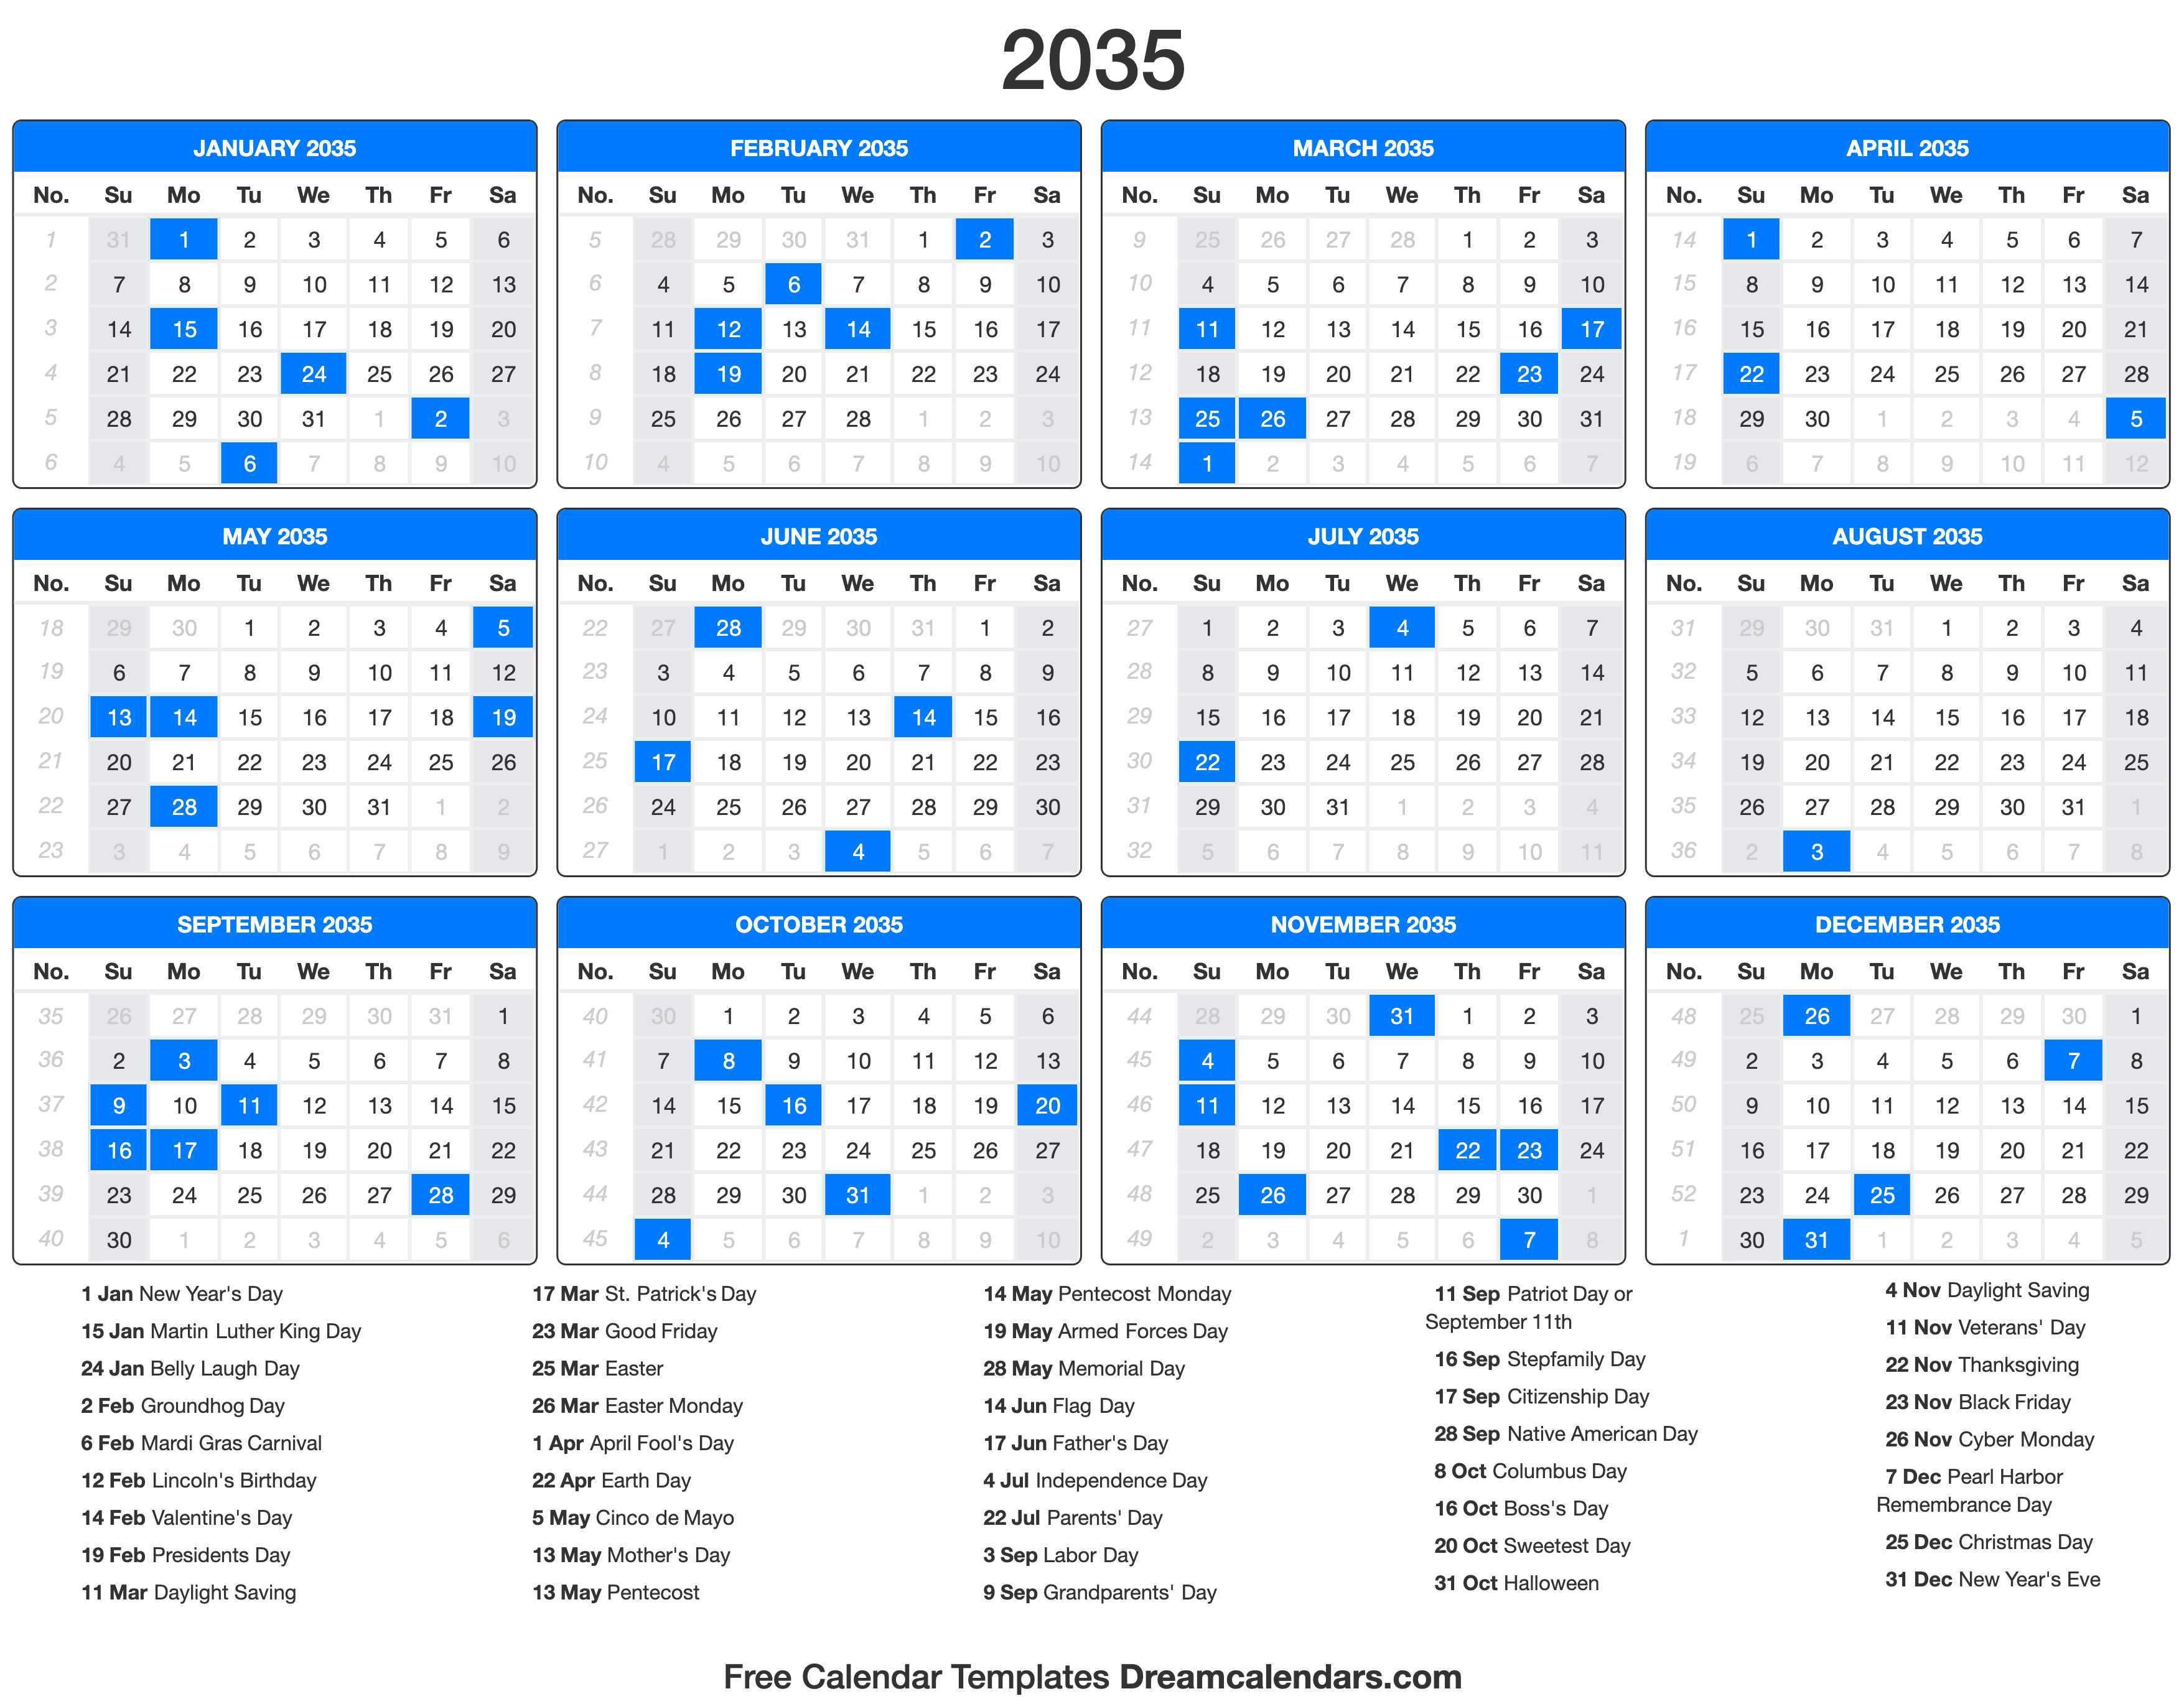 2035 Calendar with holidays